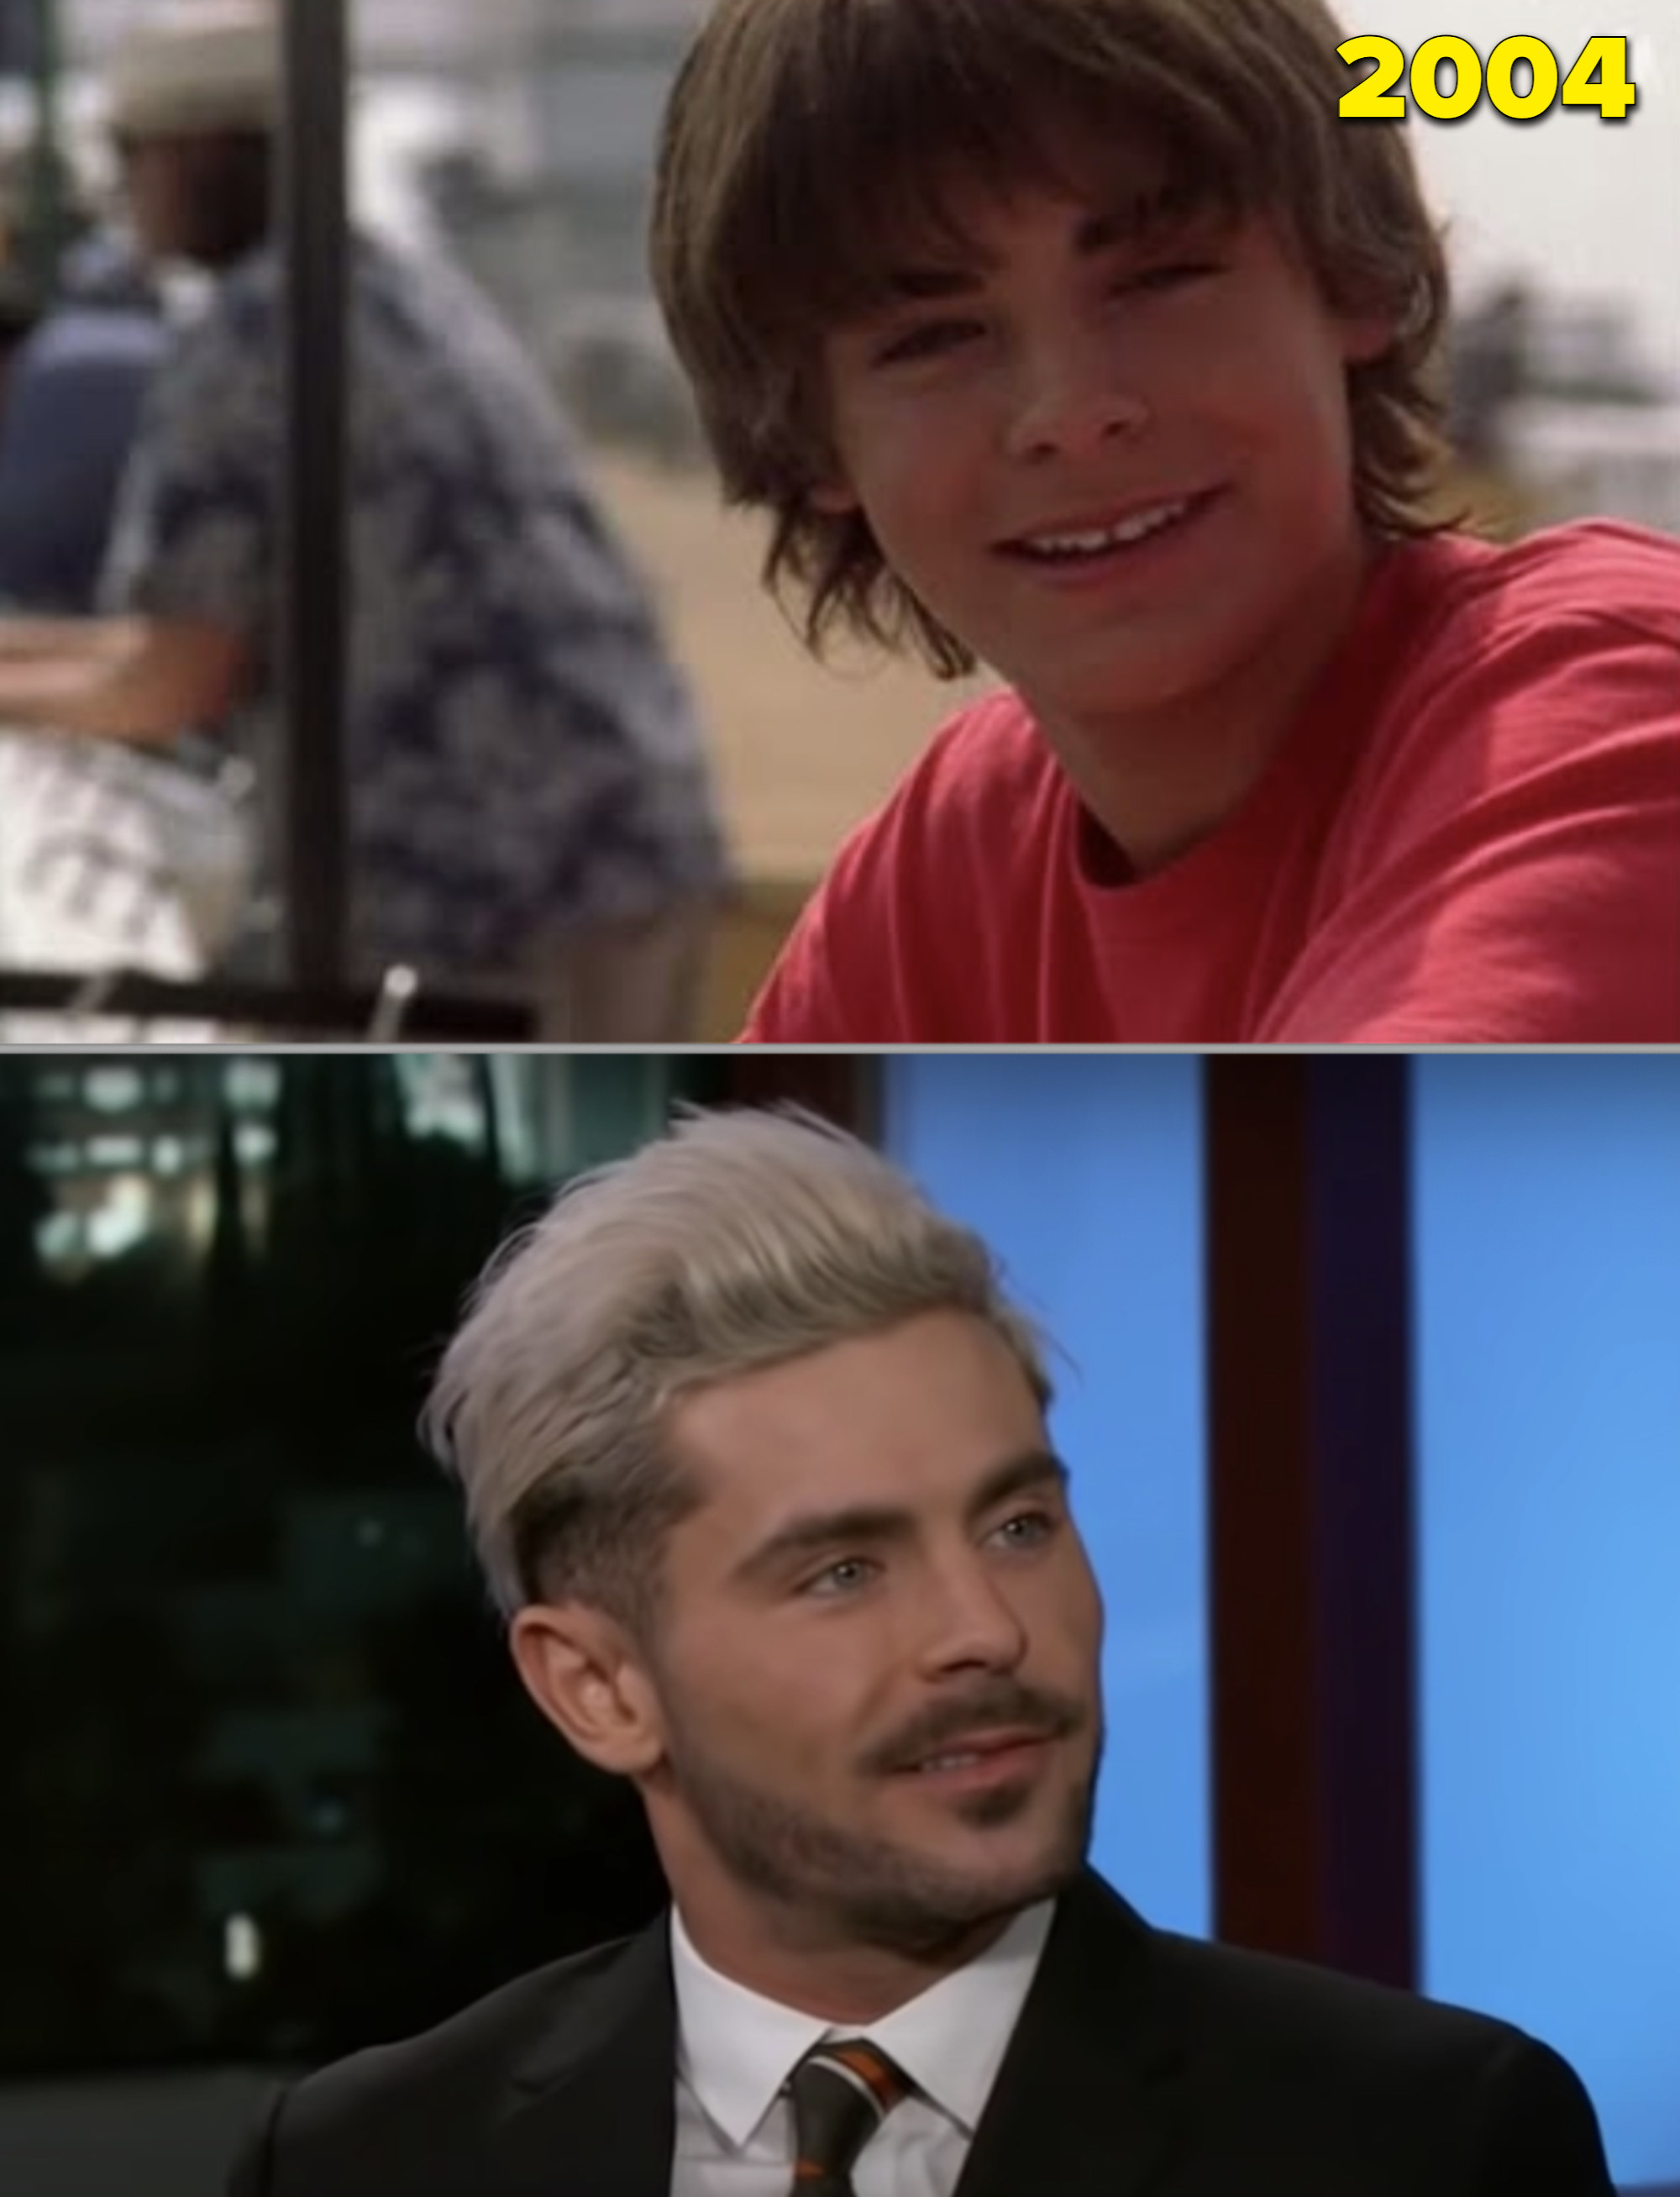 Zac Efron as a young teen vs. him being interviewed in 2019